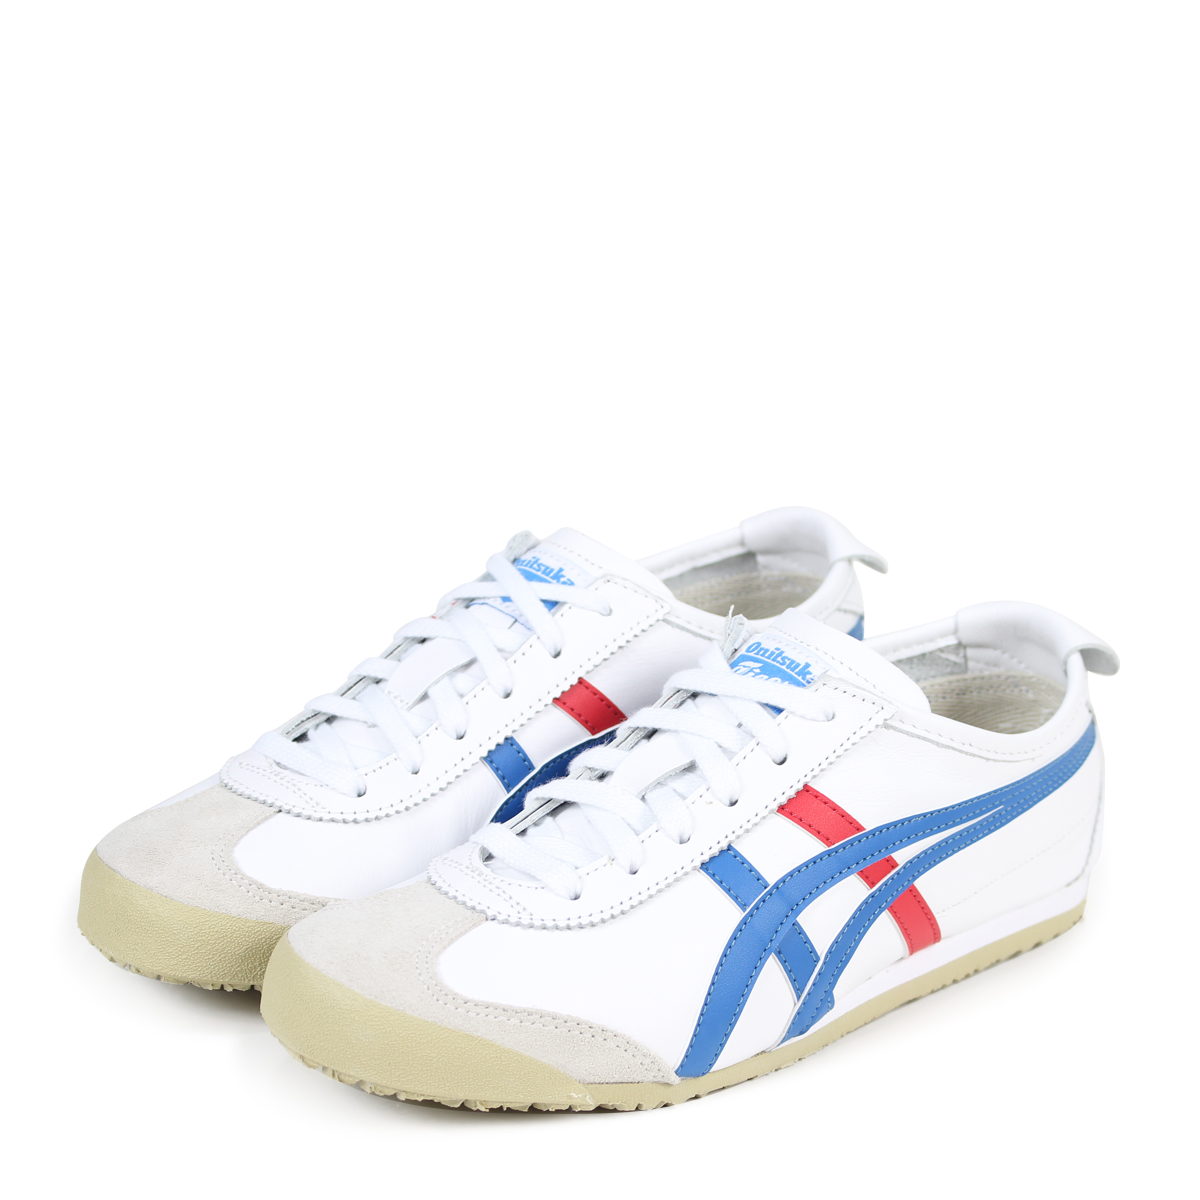 best authentic 4b470 8c723 Onitsuka Tiger MEXICO 66 Onitsuka tiger Mexico 66 sneakers men gap Dis  DL202-0146 THL202-0146 white [197]